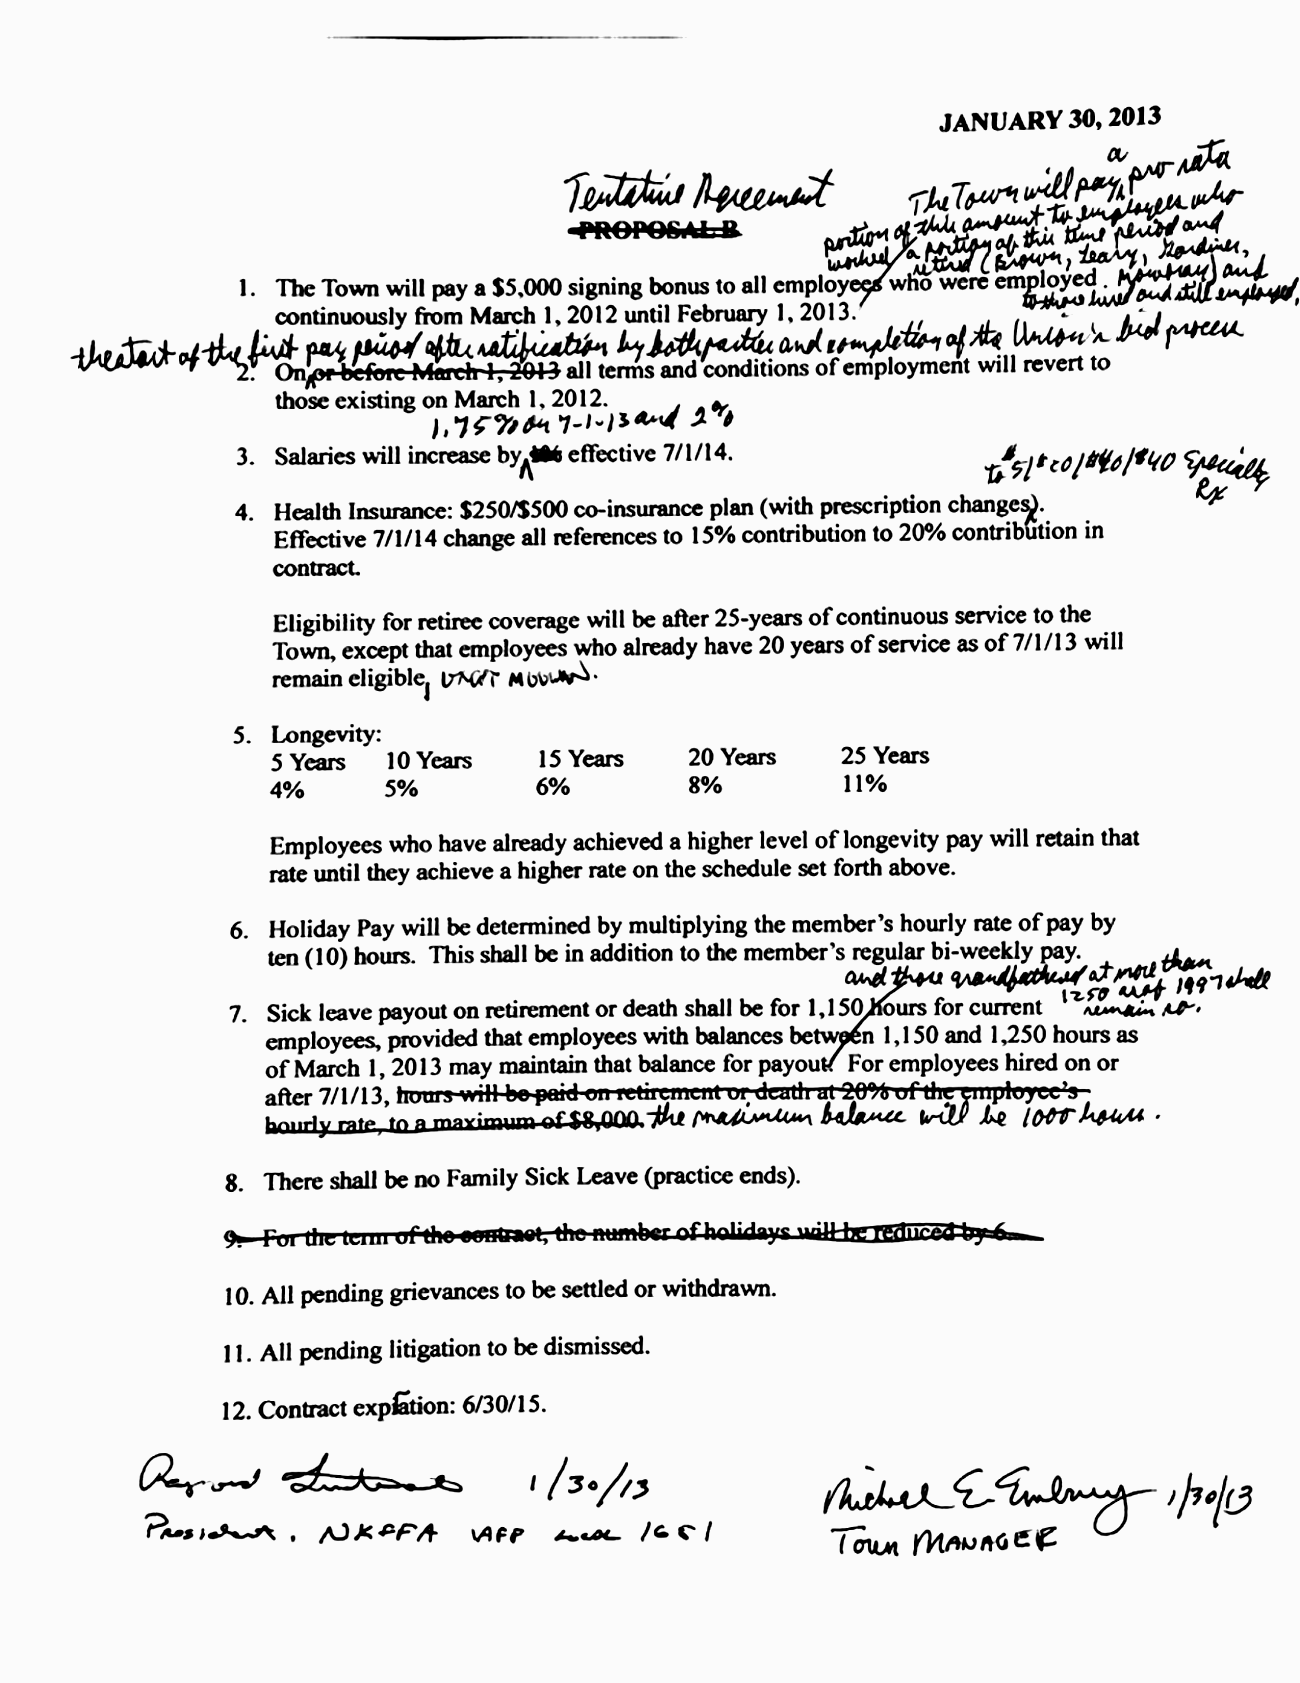 Council Vetos Firefighter Contract Agreement – Contract Agreement